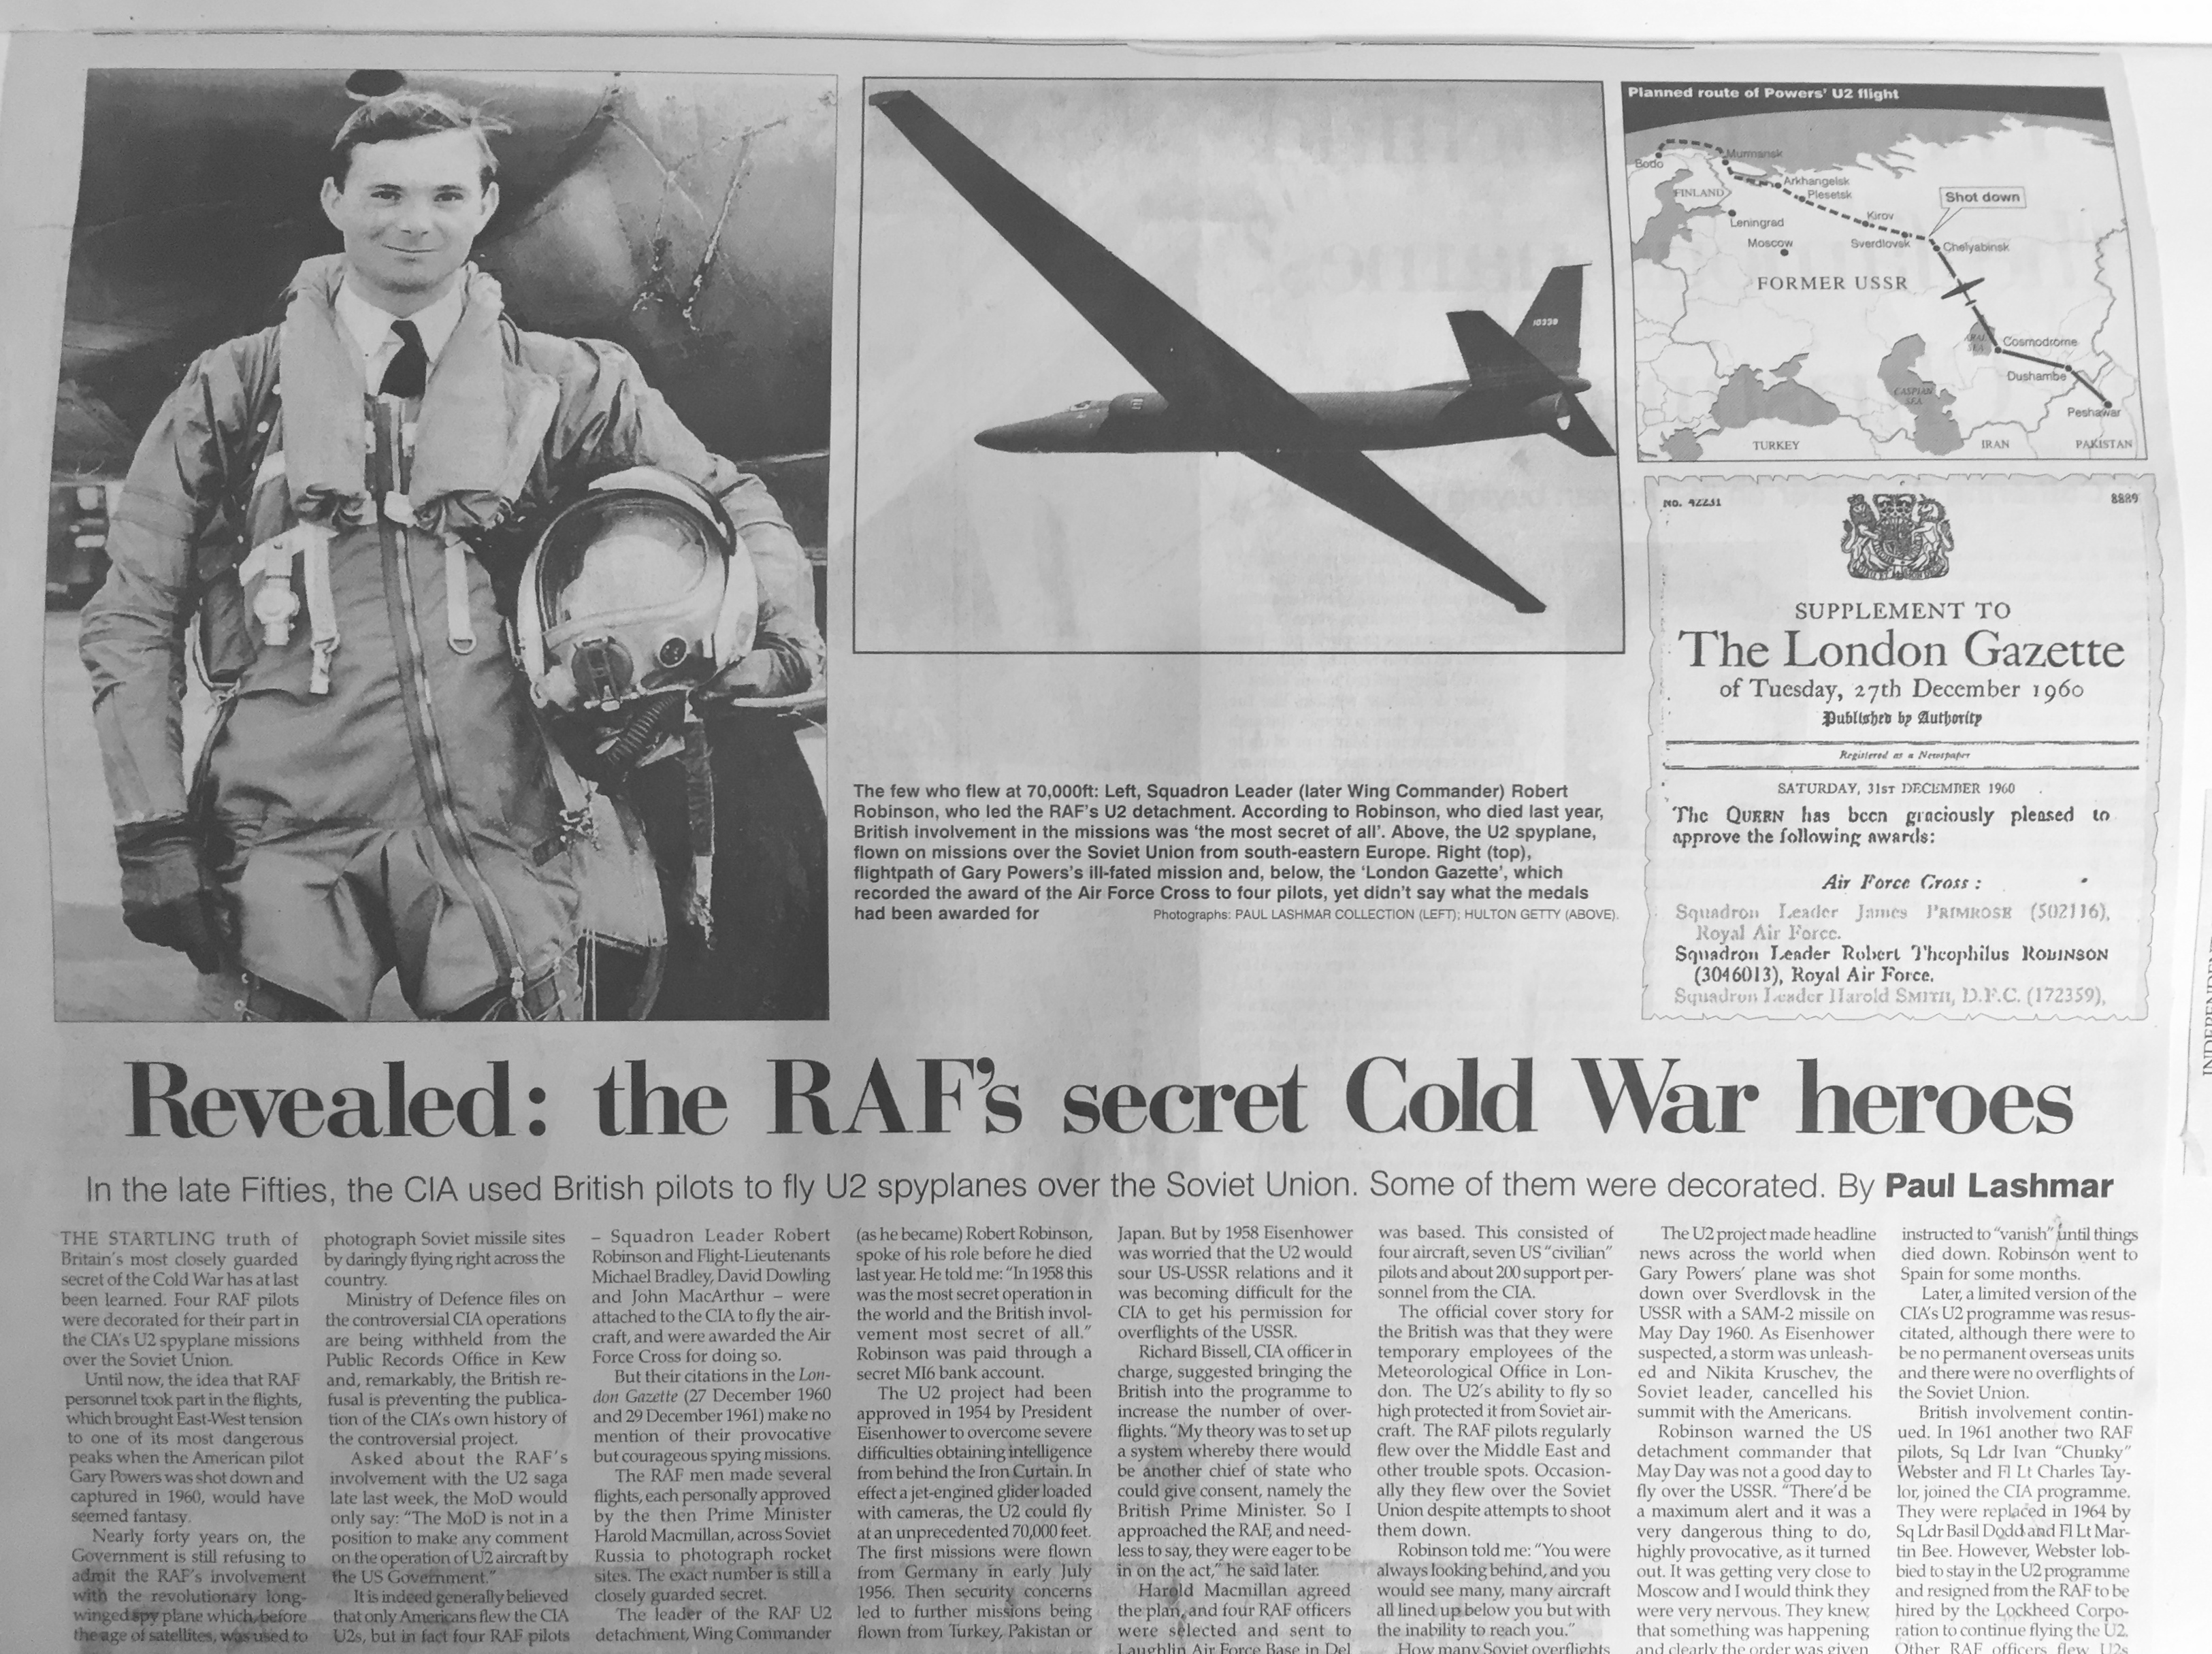 Secret U2 Flights of the Cold War – 20 years since this story.